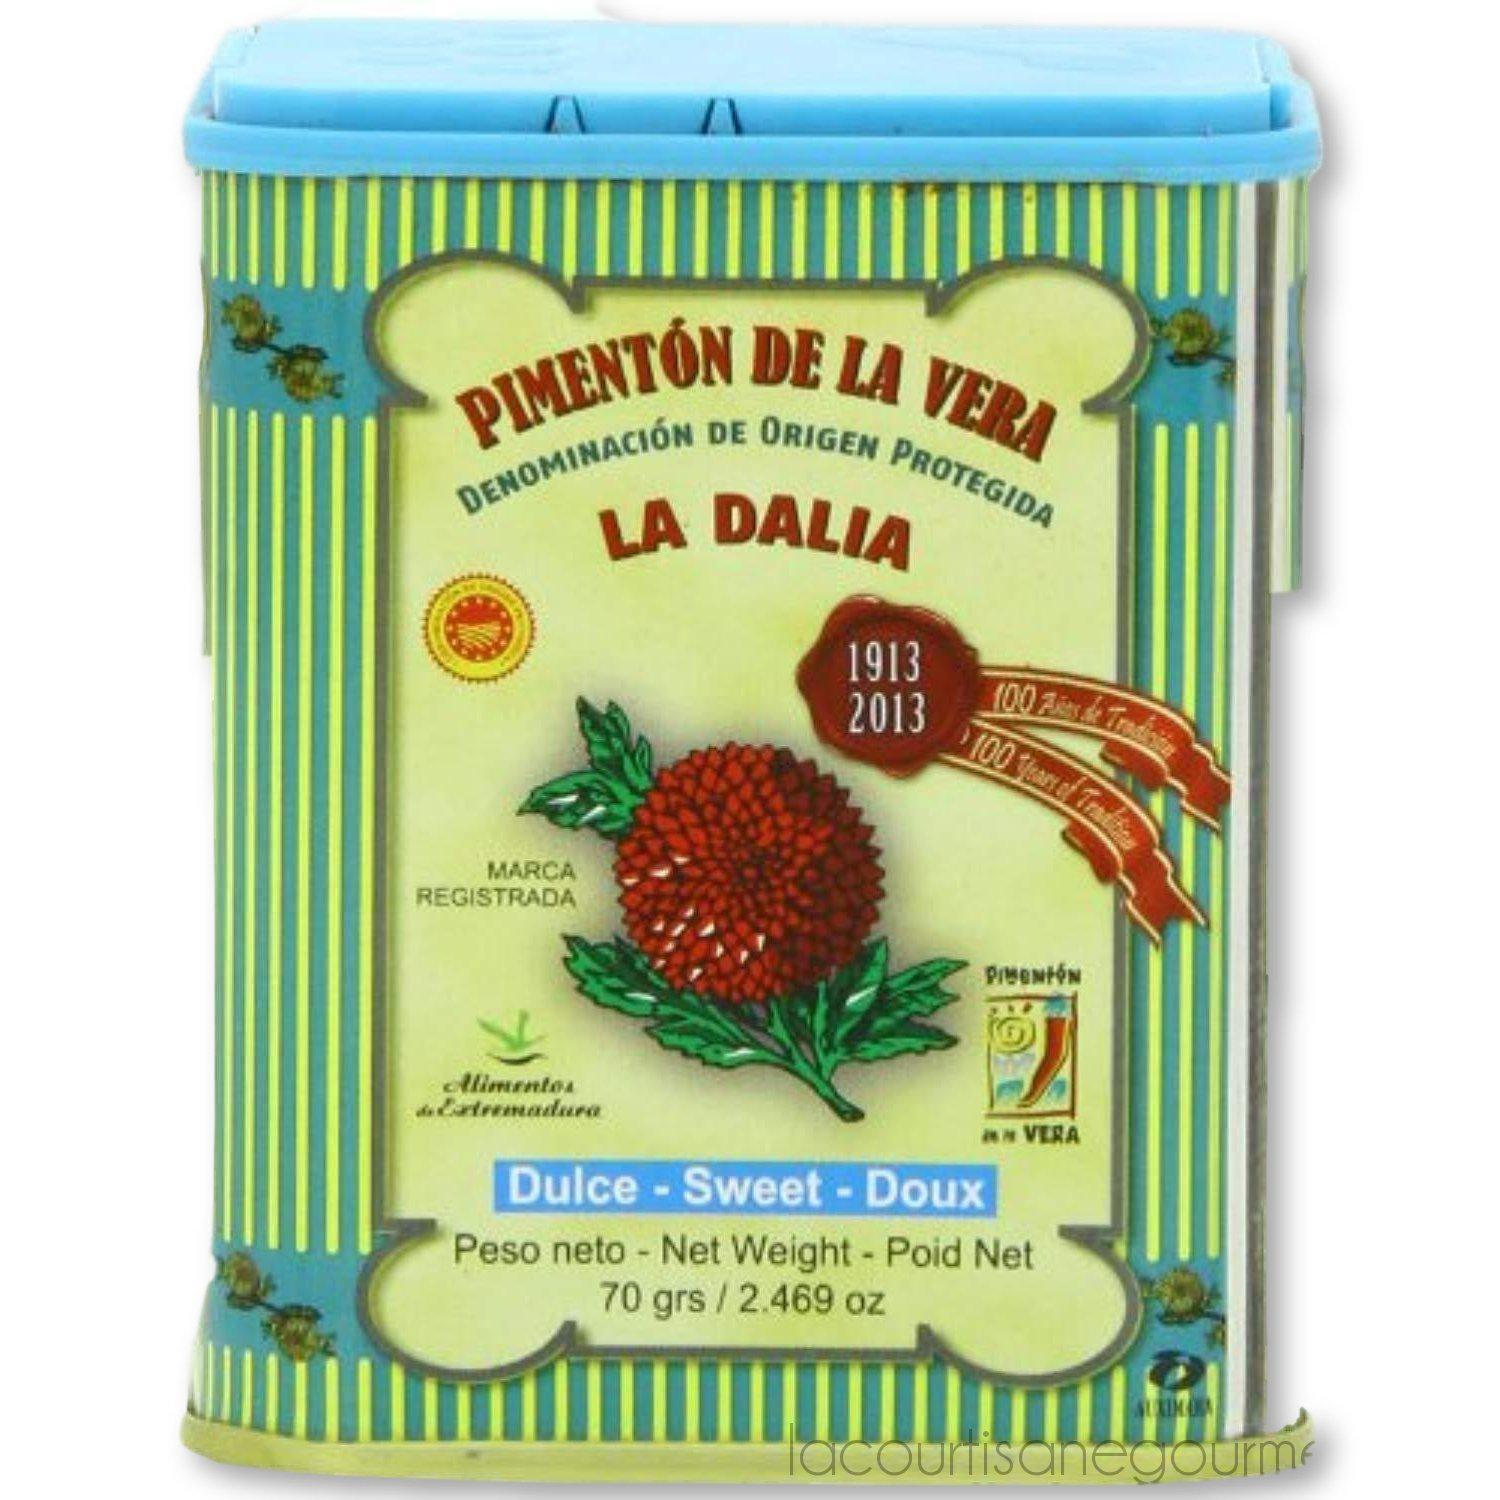 La Dalia Sweet Smoked Paprika From Spain, 2.469 Oz - - La Courtisane Gourmet Food